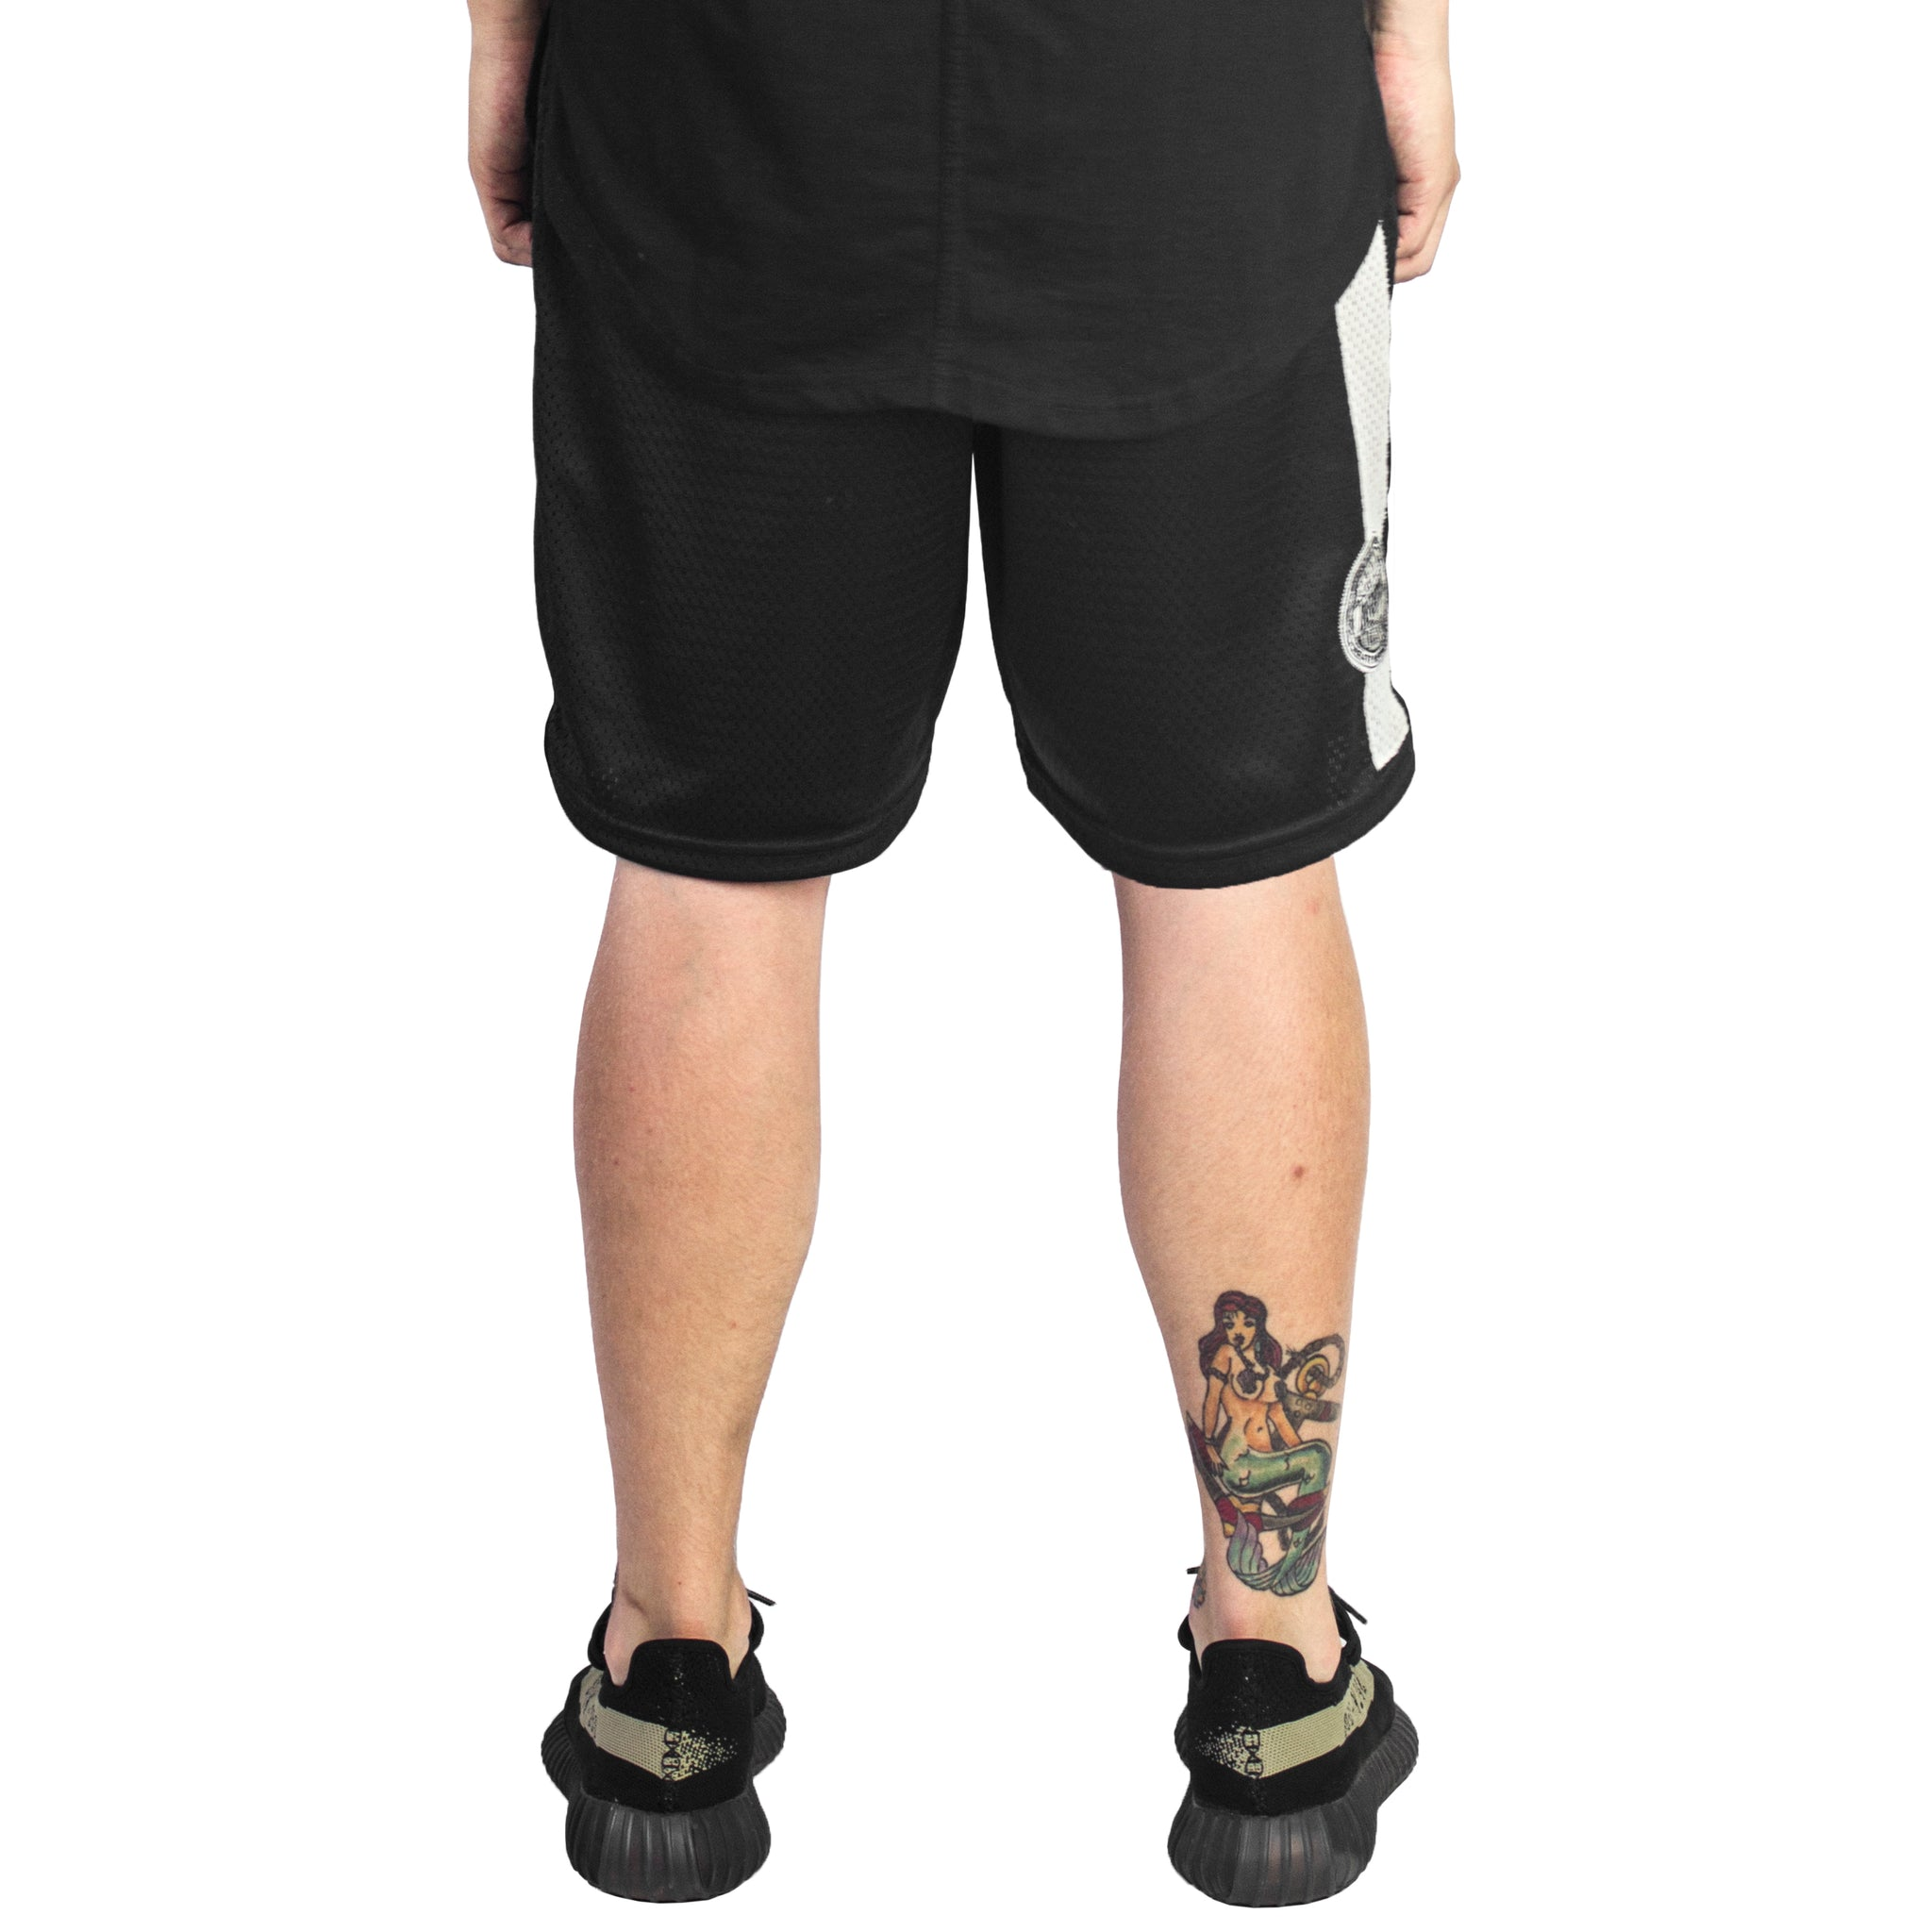 Mesh Champion Shorts : Black